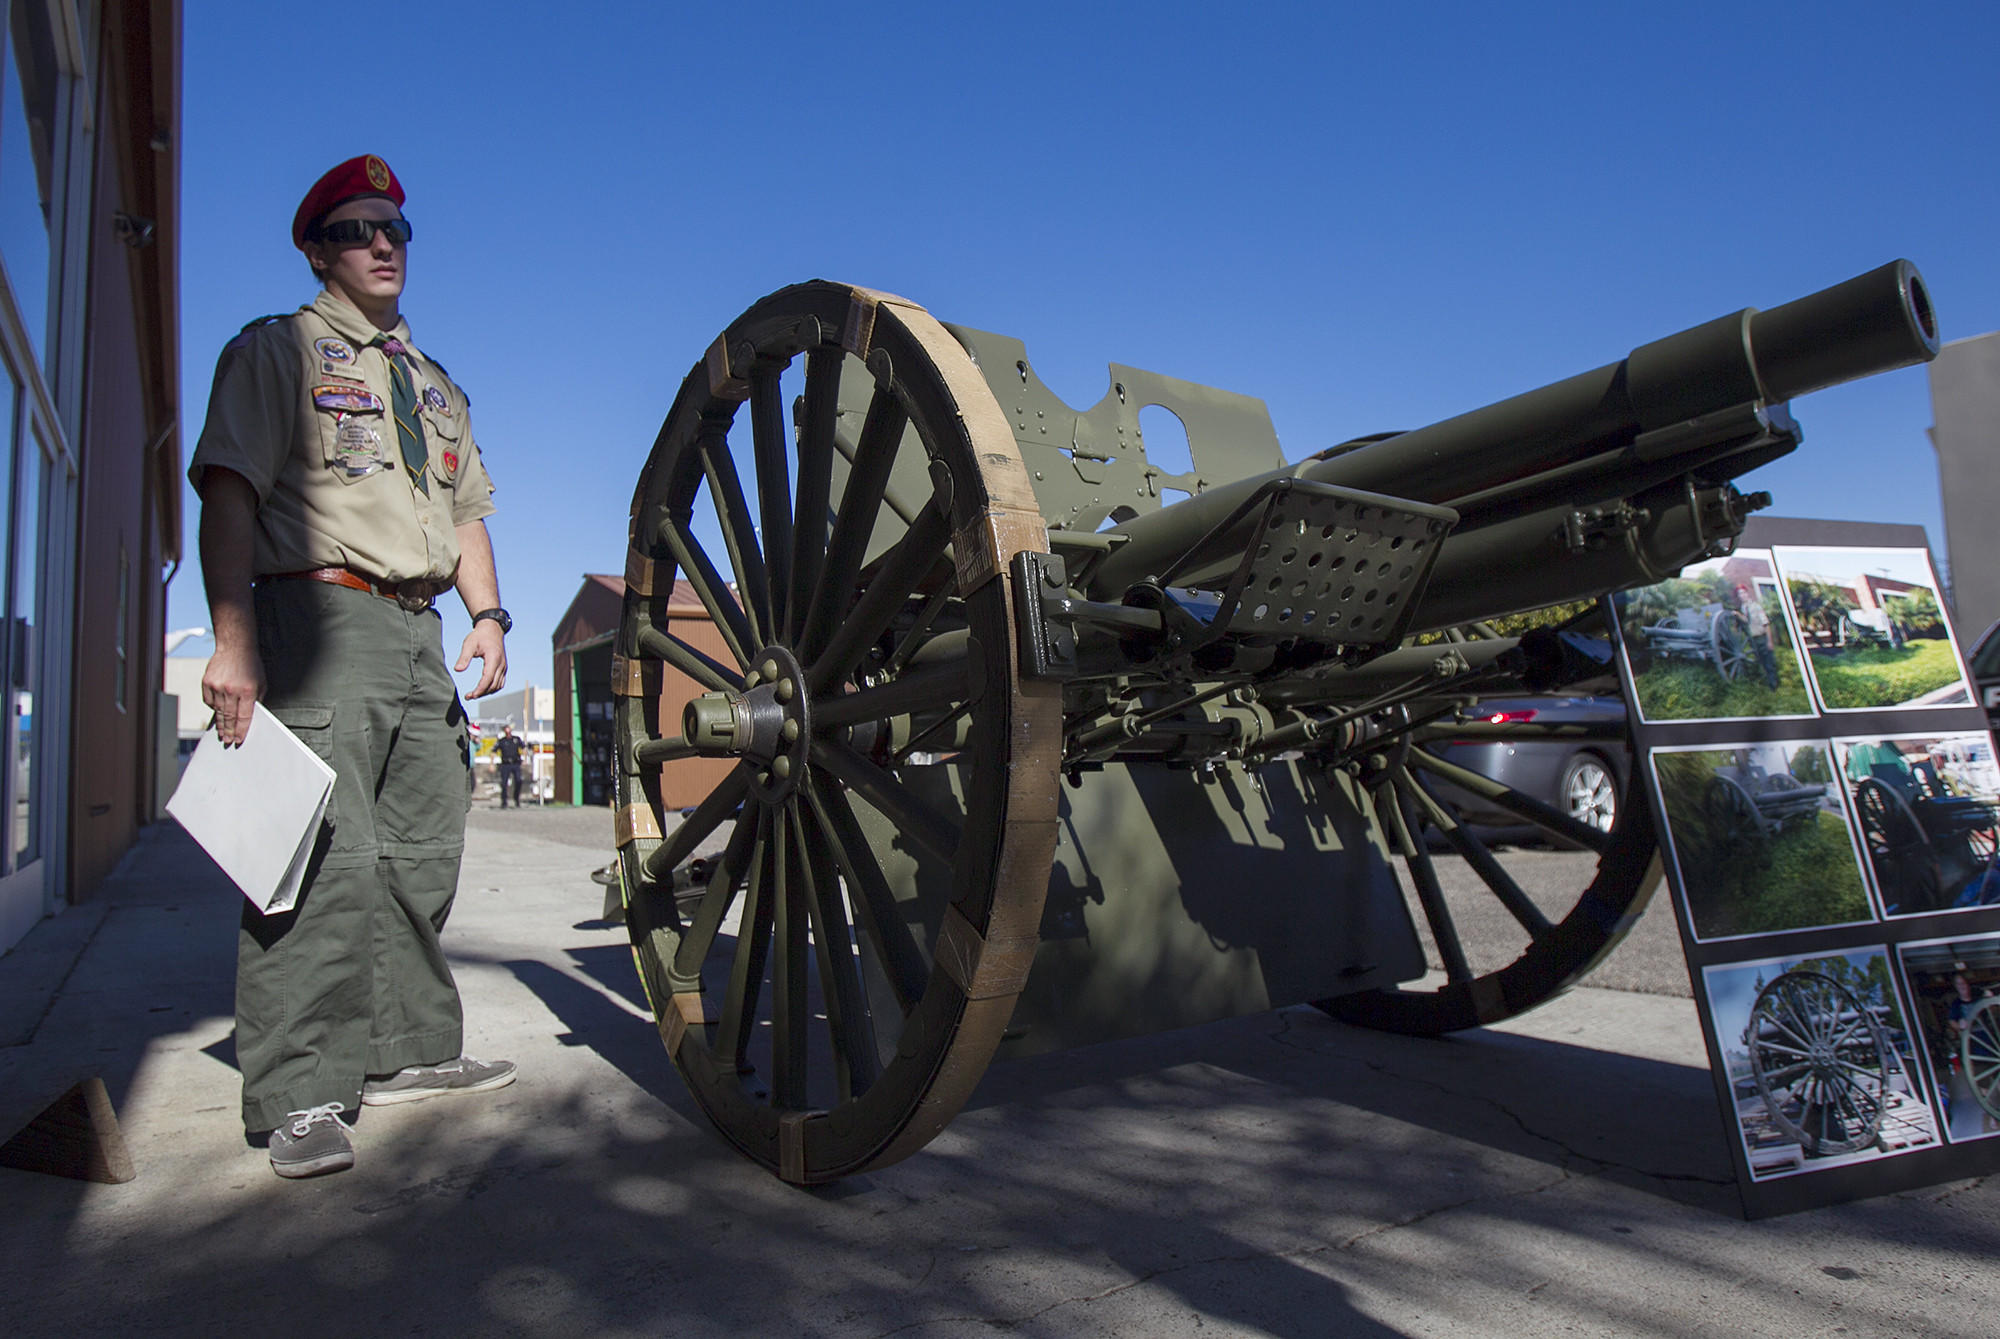 Brenden Fettis, 17, stands next to the US Army M1902 field gun that he restored as his Eagle Scout project. The gun will go back to its home in front of the Costa Mesa Police Department sub station on 18th Street. Photo taken on Thursday, December 26. (Scott Smeltzer, Coastline Pilot)